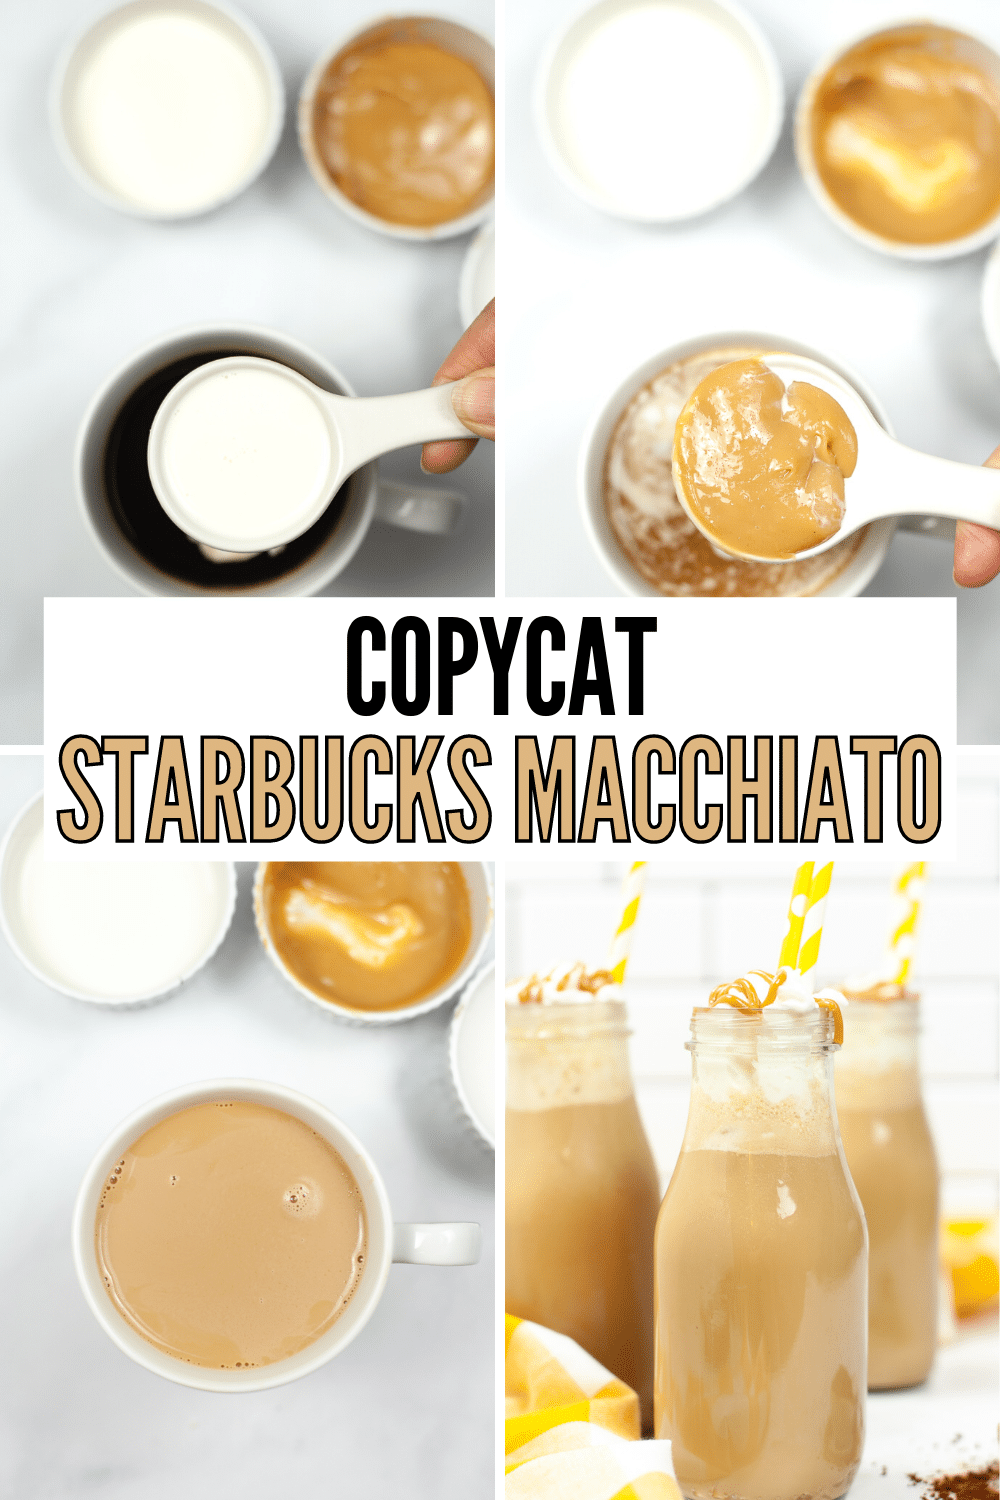 This Copycat Starbucks Iced Caramel Macchiato Recipe tastes just like the real deal. Save money & make it at home for a fraction of the cost! #copycatstarbucks #icedcaramelmacchiato #savemoney #recipe via @wondermomwannab